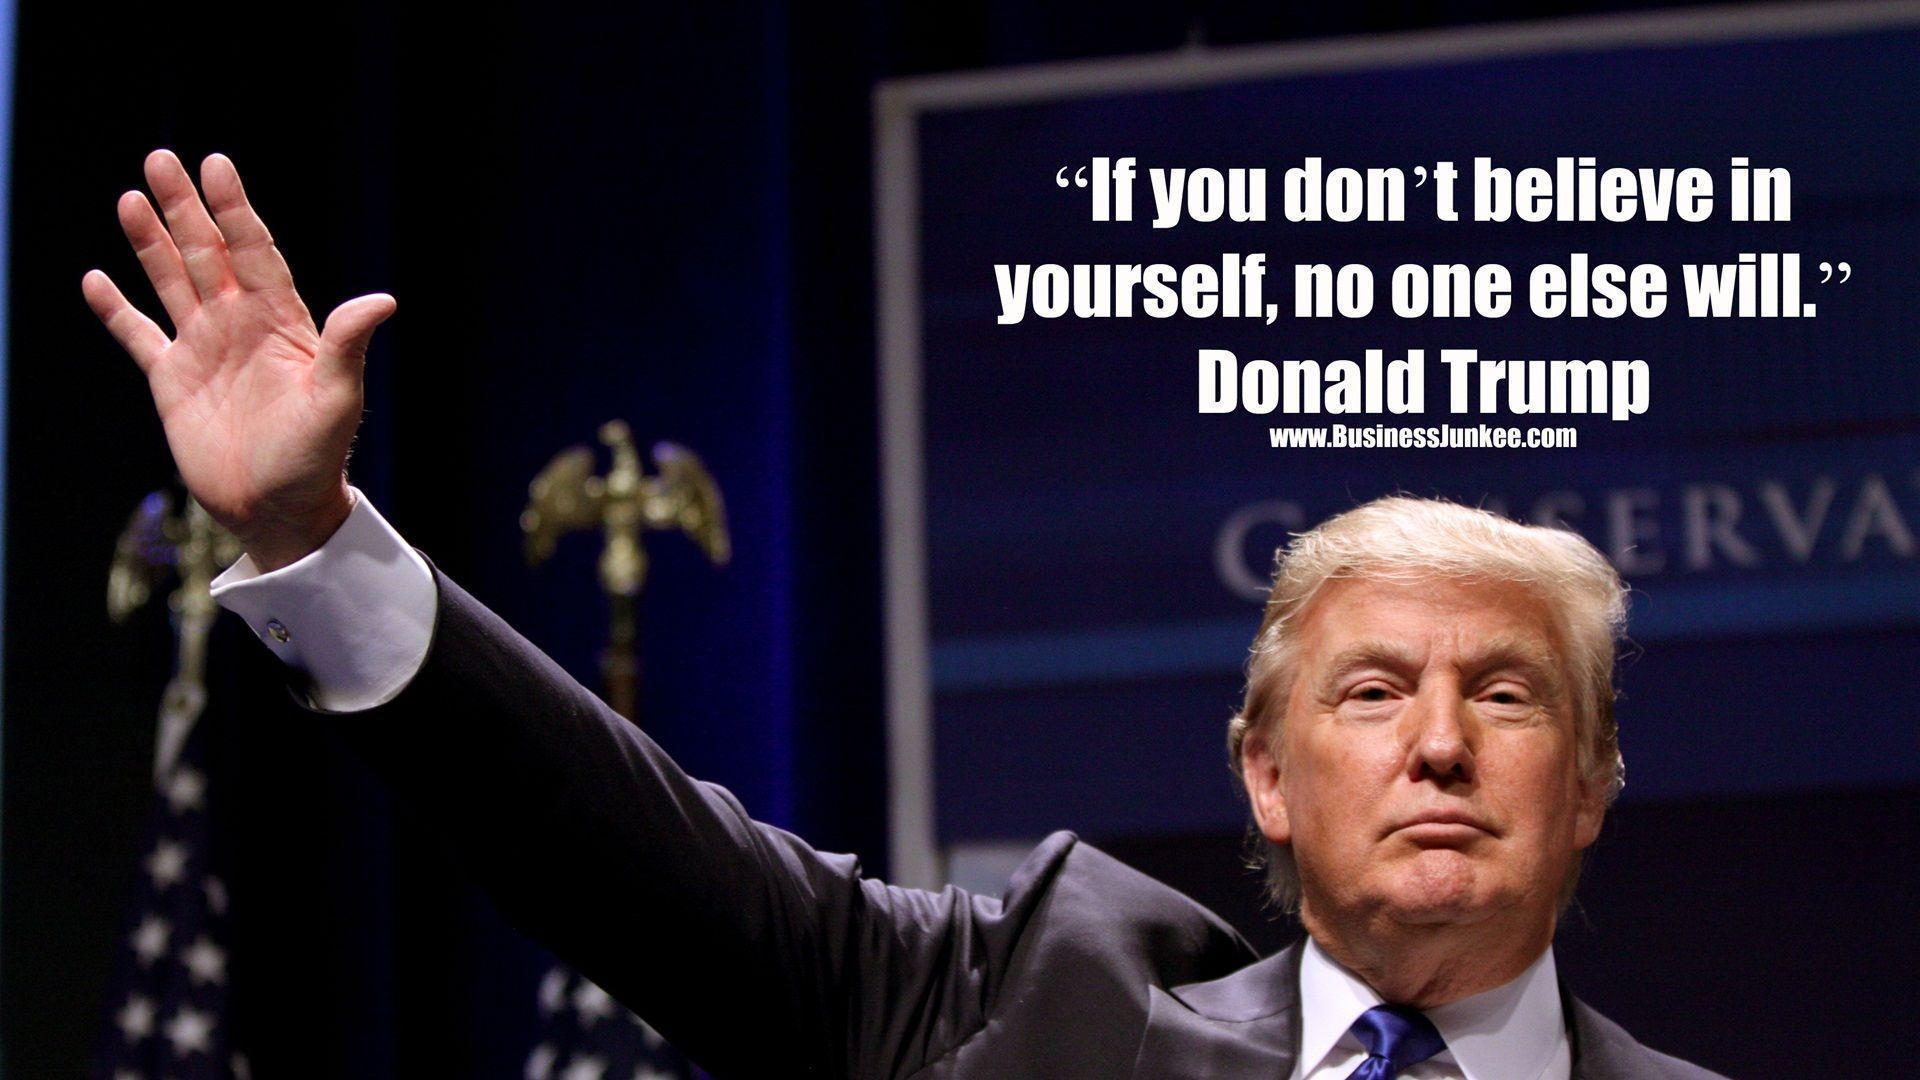 Donald Trump Believe Yourself Quotes Wallpapers 11419